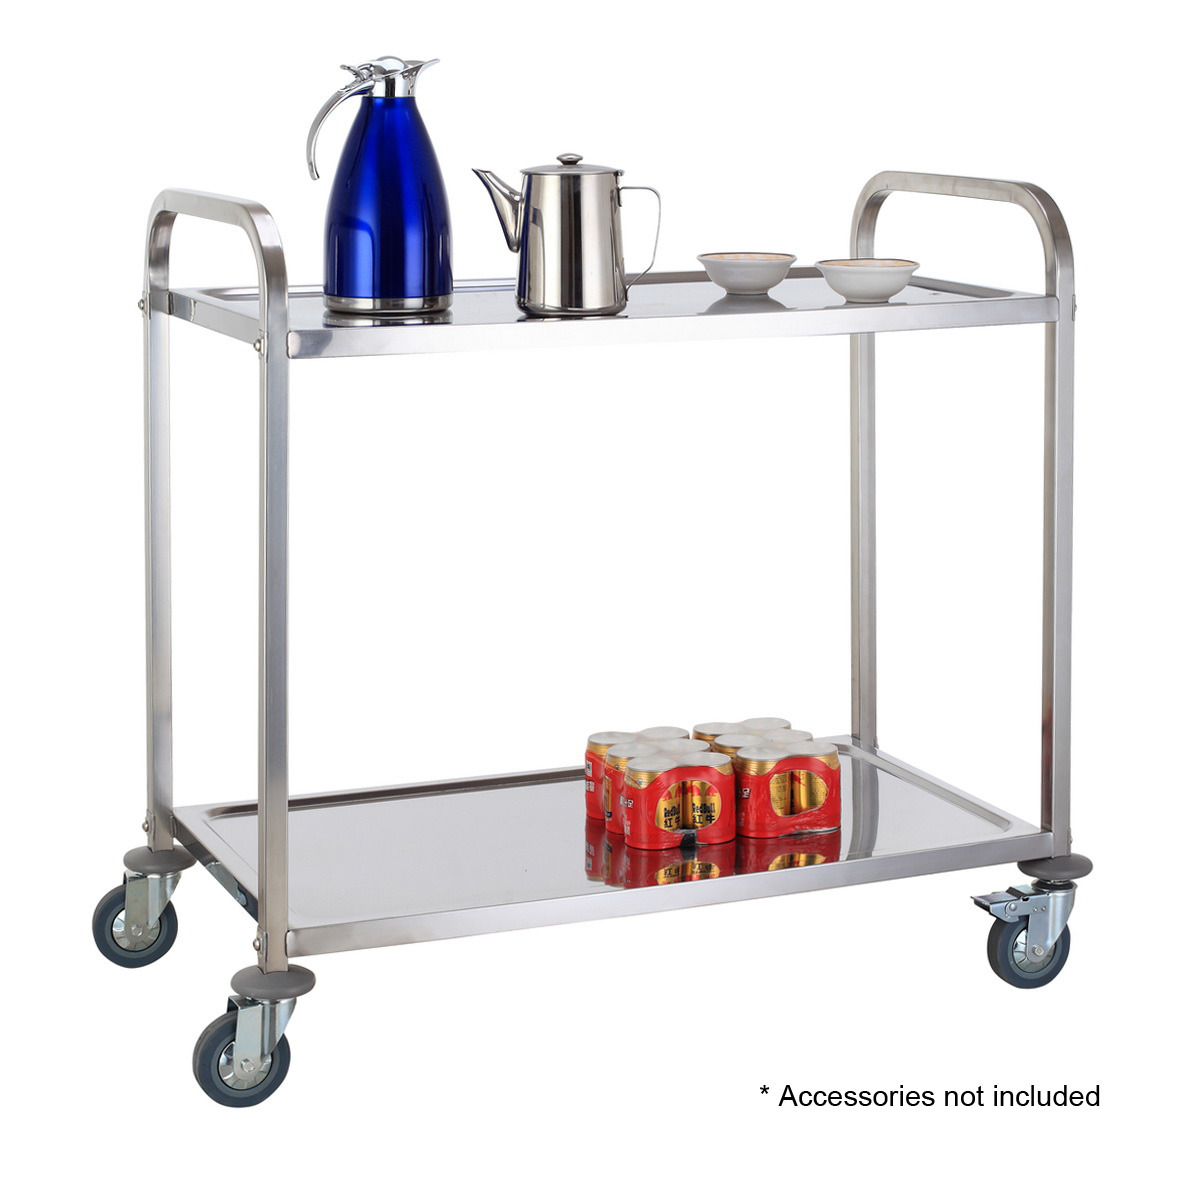 2 TIER STAINLESS STEEL KITCHEN DINING TROLLEY SERVING UTILITY CART EBay